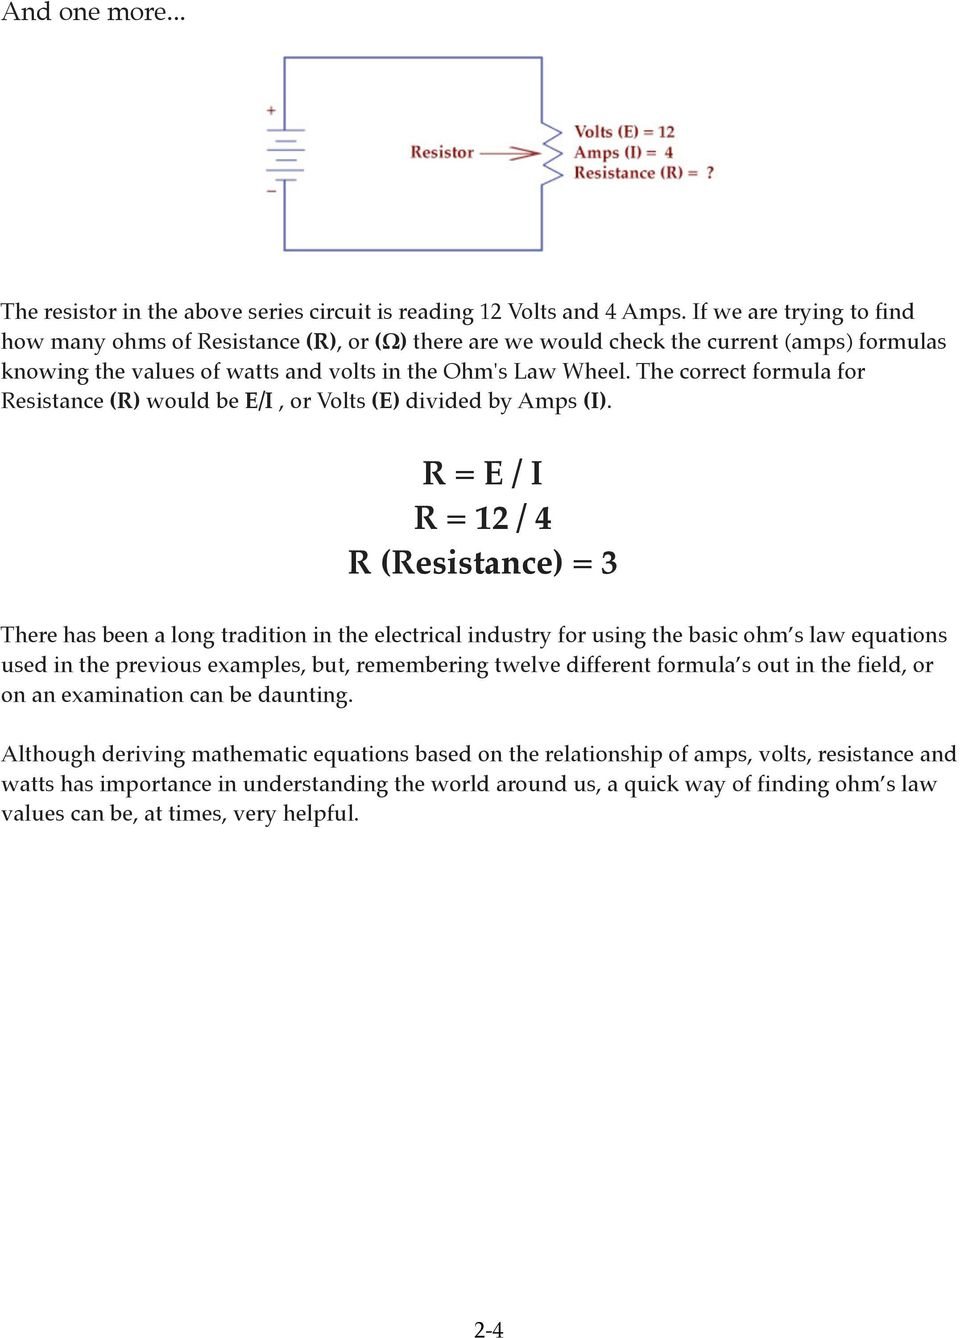 Ohm S Law George Simon Pdf Very Popular Images The Series Circuit Correct Formula For Resistance R Would Be E I Or Volts